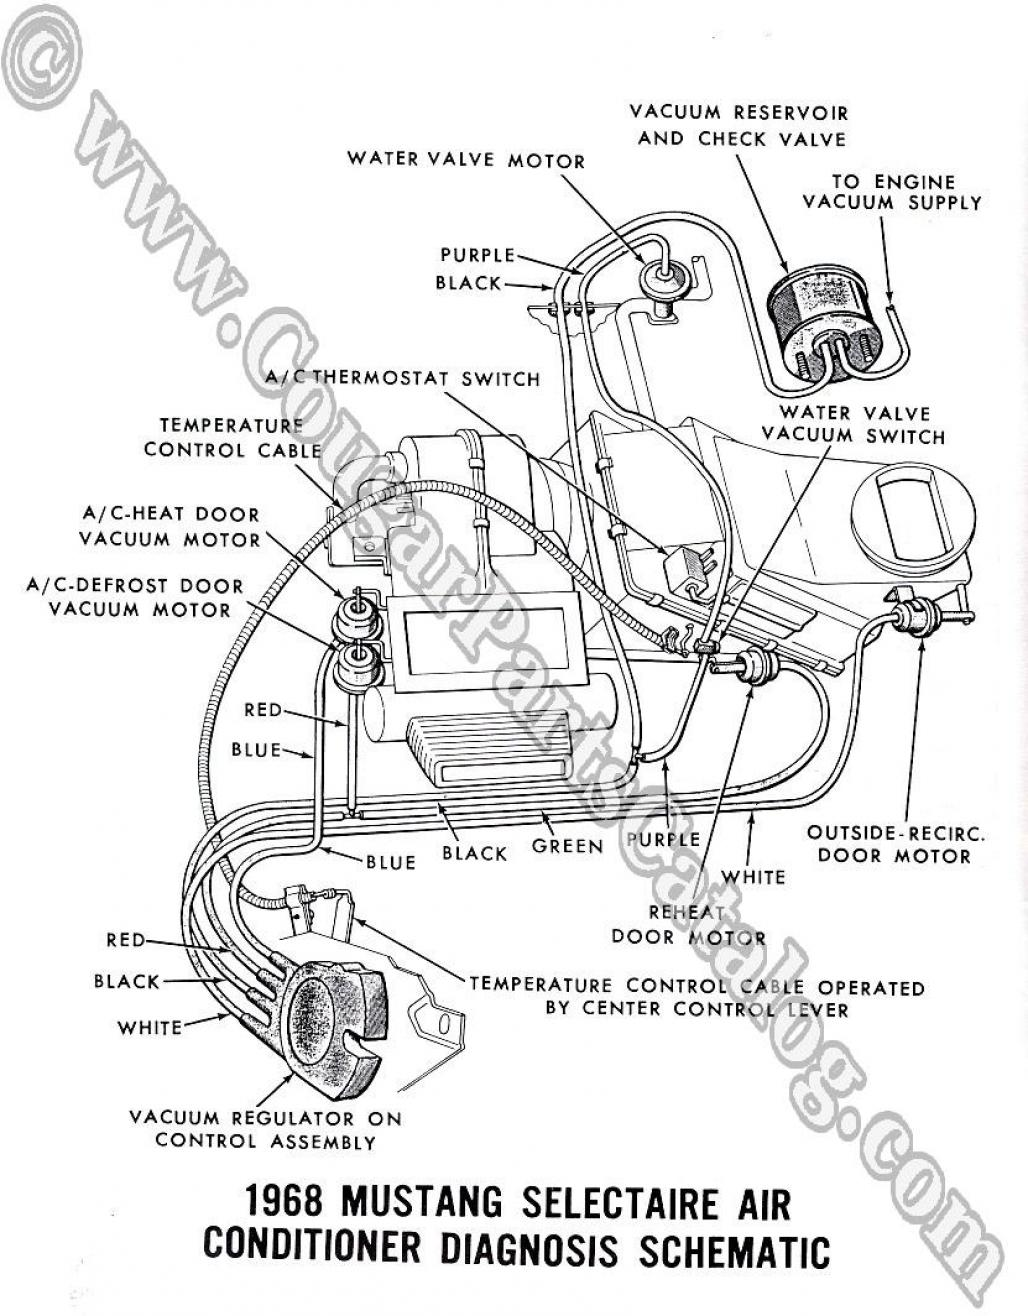 manual - vacuum schematic   cougar headlight schematic